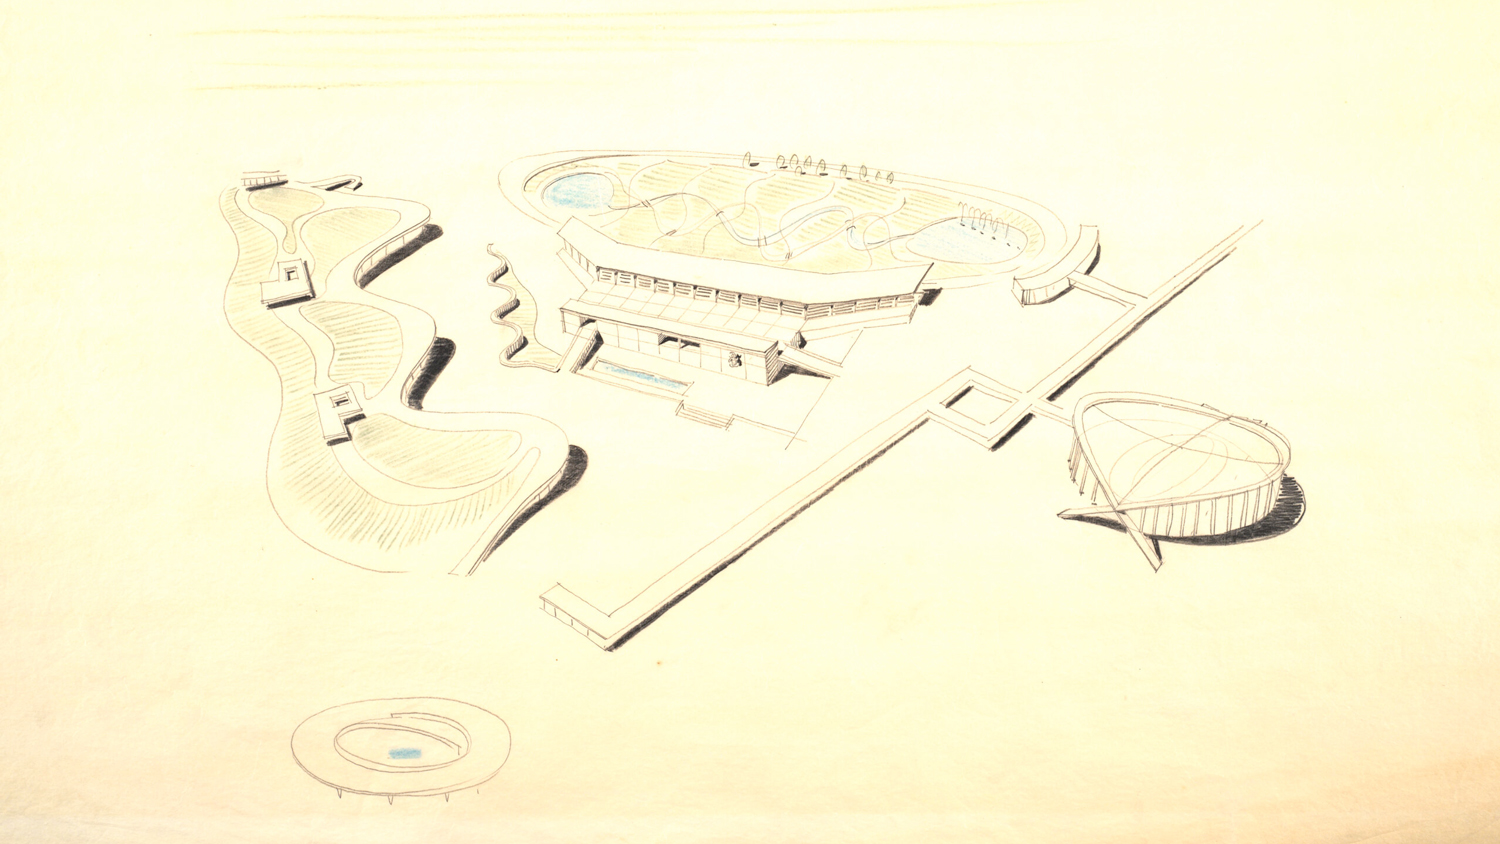 Arena, grandstand, and racetrack, North Carolina State Fairgrounds, Raleigh. Drawing by Matthew Nowicki, from the Special Collections Research Center, NC State University; Racetrack and observation building, North Carolina State Fairgrounds, Raleigh. Drawing by Matthew Nowicki, from the Special Collections Research Center, NC State University.